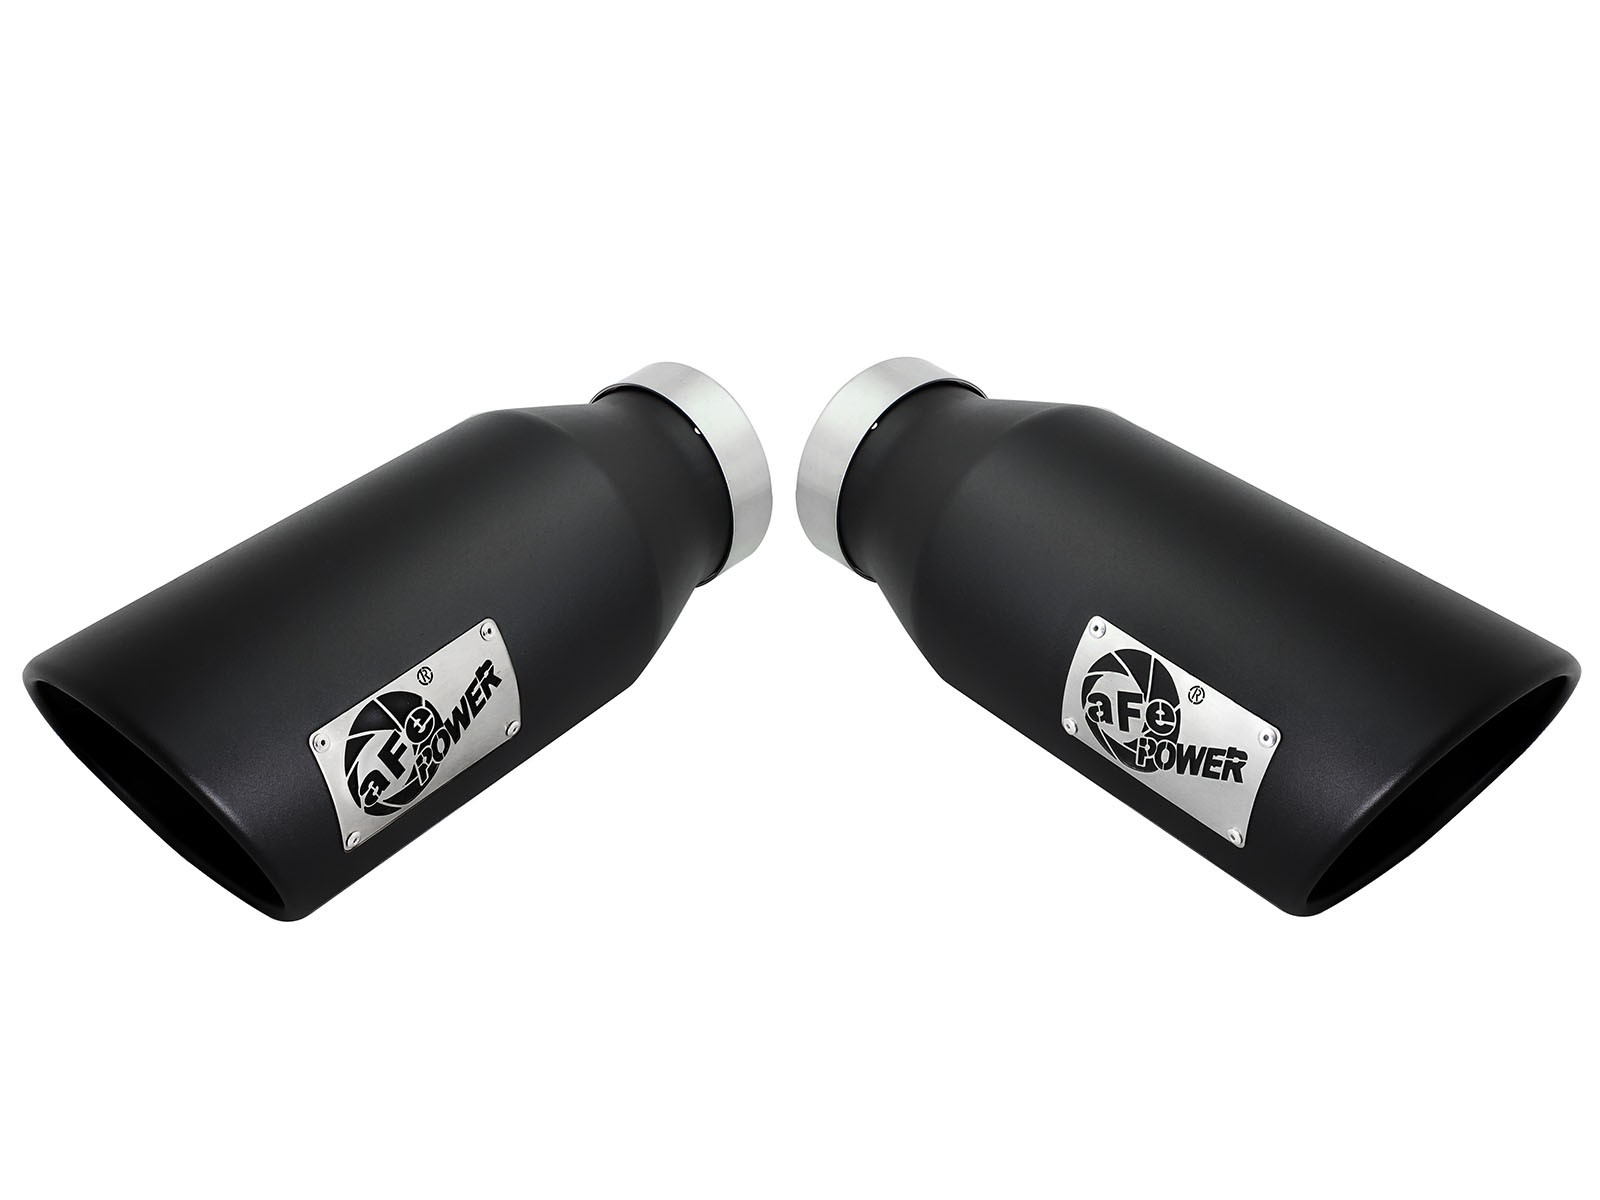 "aFe Power Black 4"" MACH Force-Xp Universal Stainless Steel Exhaust Tips"